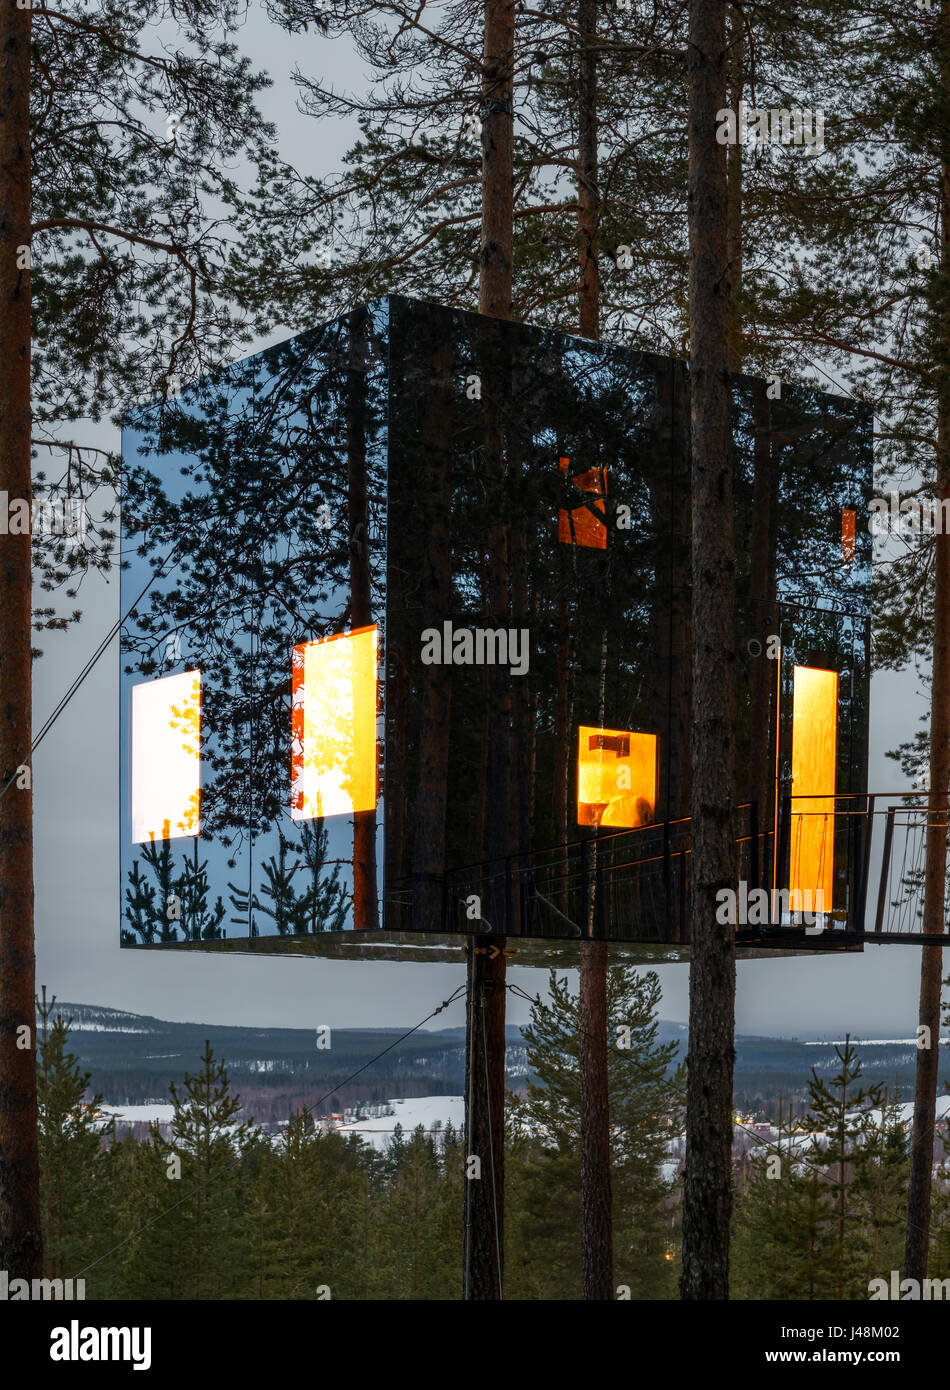 Accommodation In The Woods Known As The Mirrorcube At The